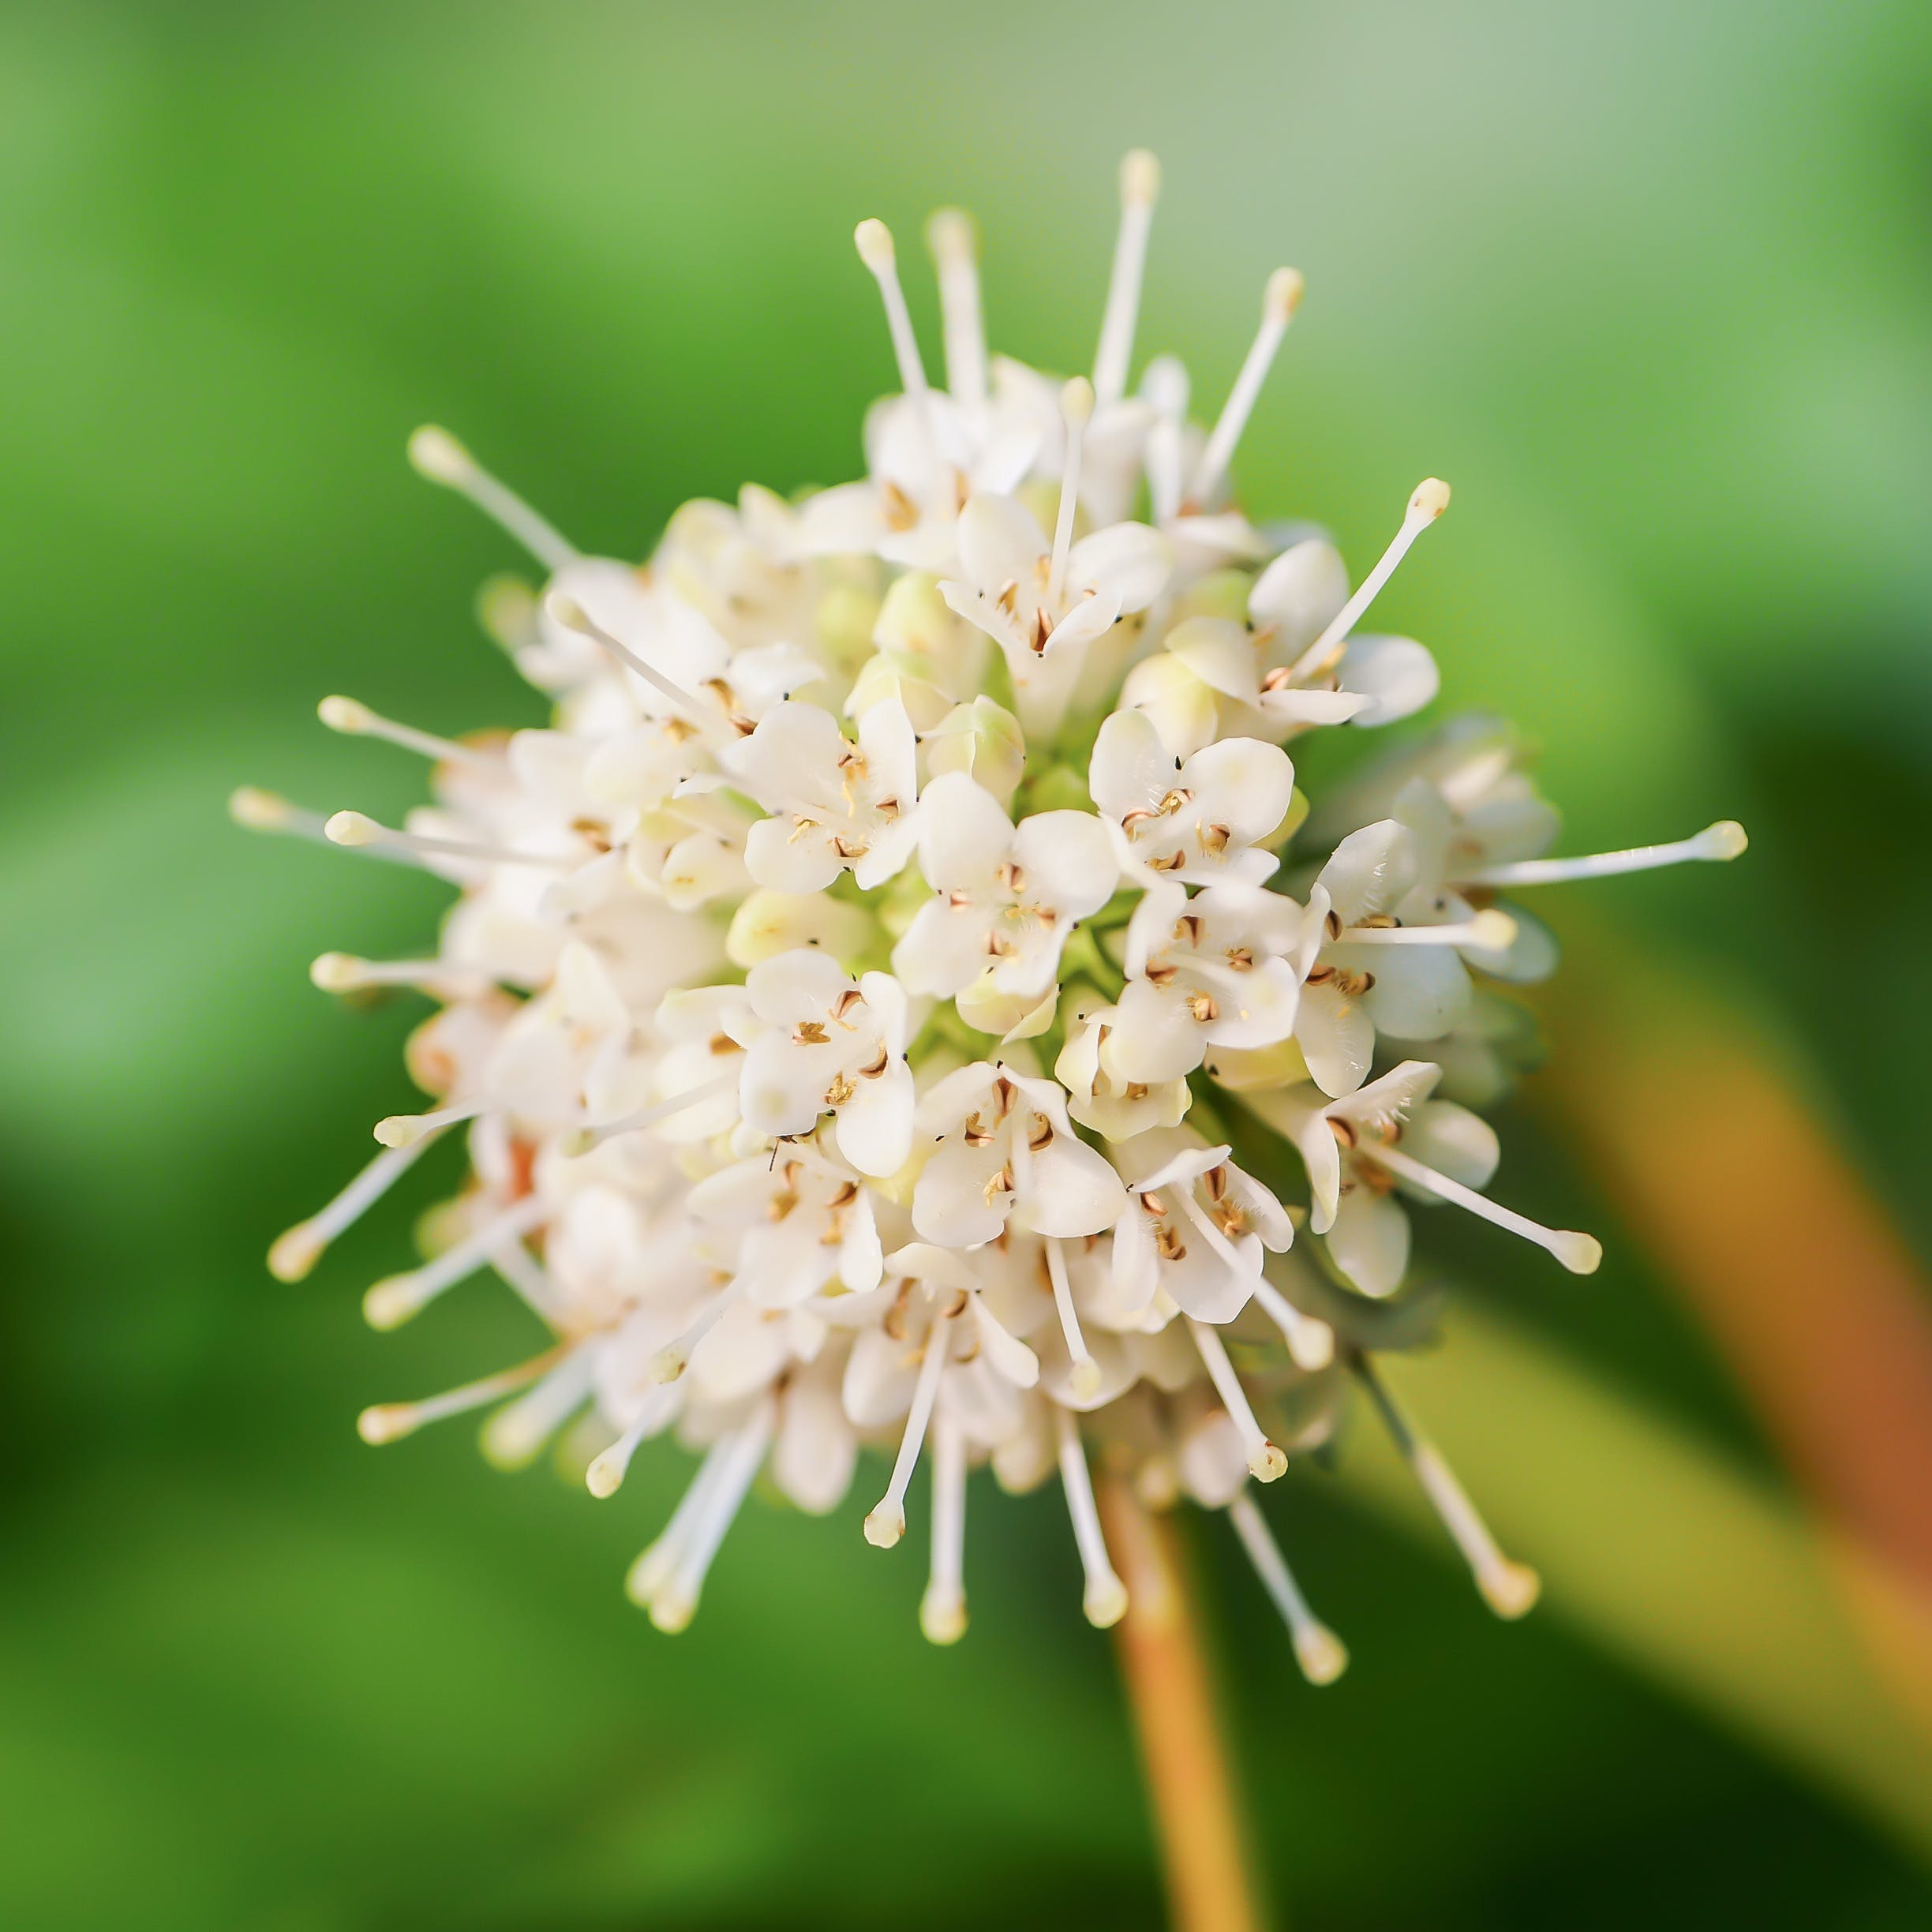 Close-photo of White Petaled Flower